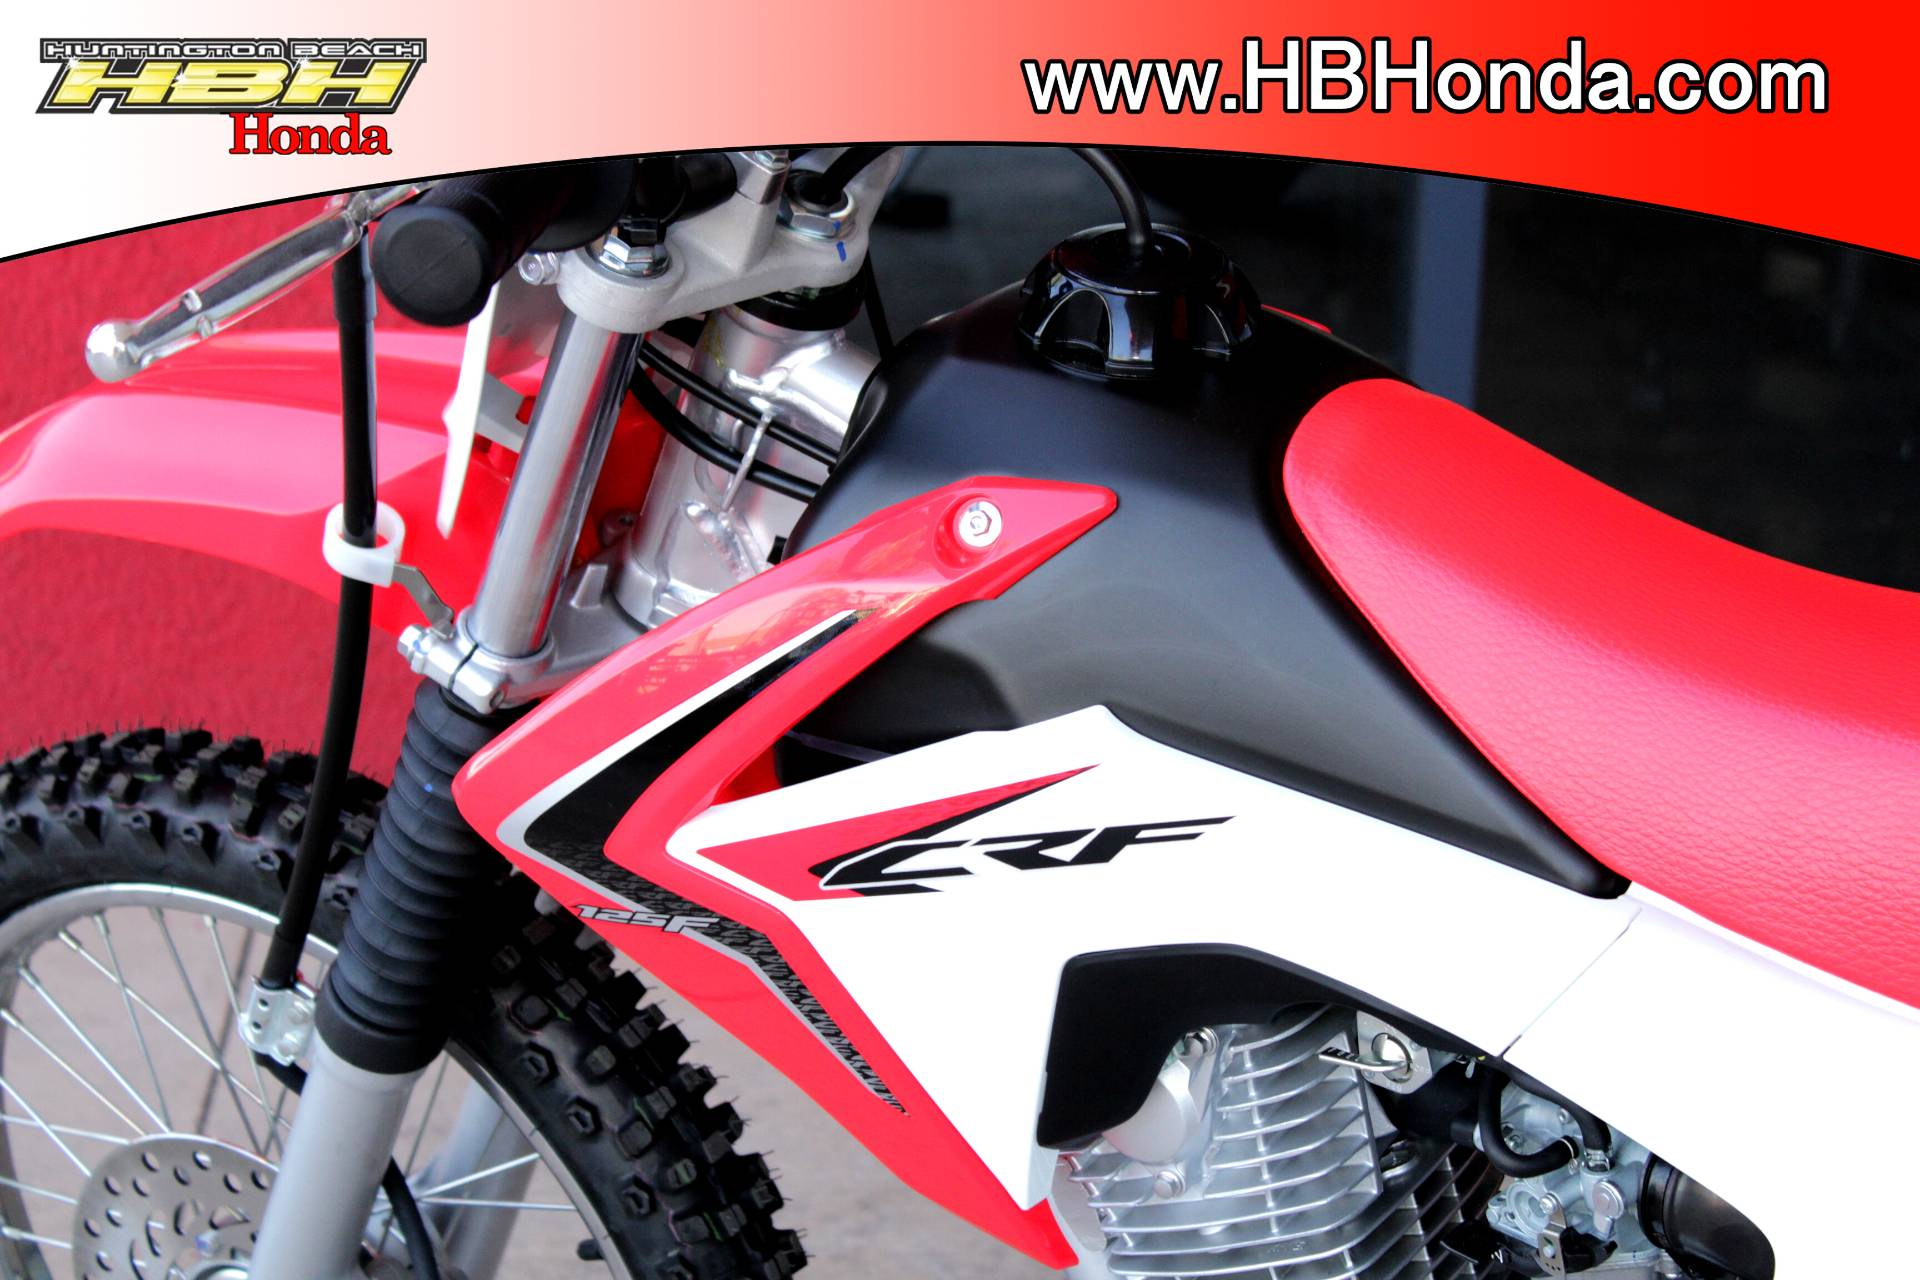 New 2018 Honda Crf125f Motorcycles For Sale In Huntington